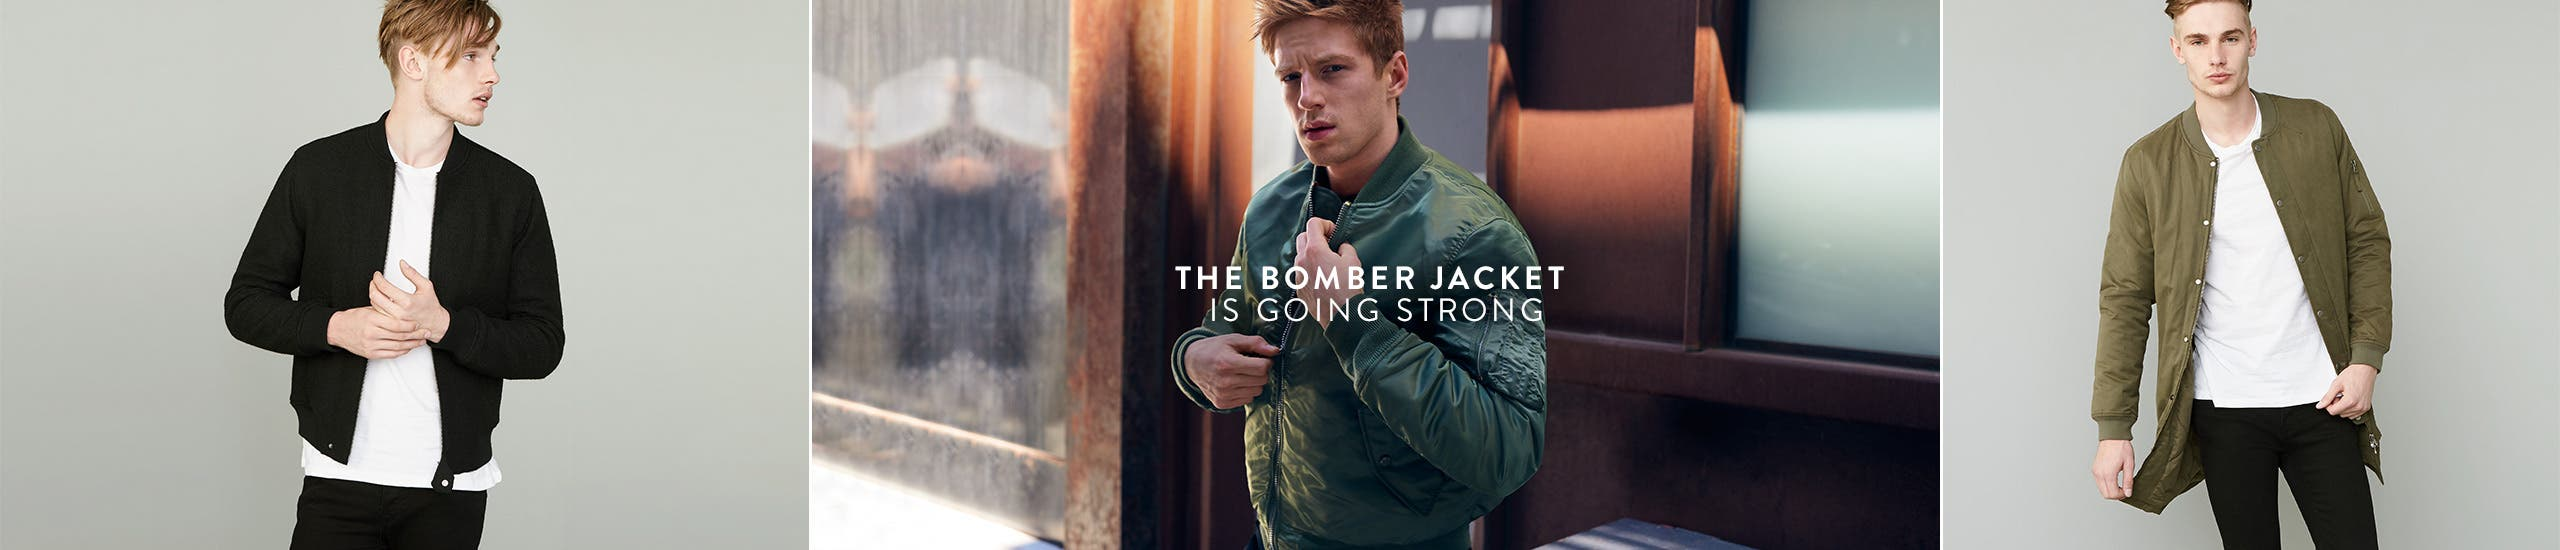 The bomber jacket is going strong.